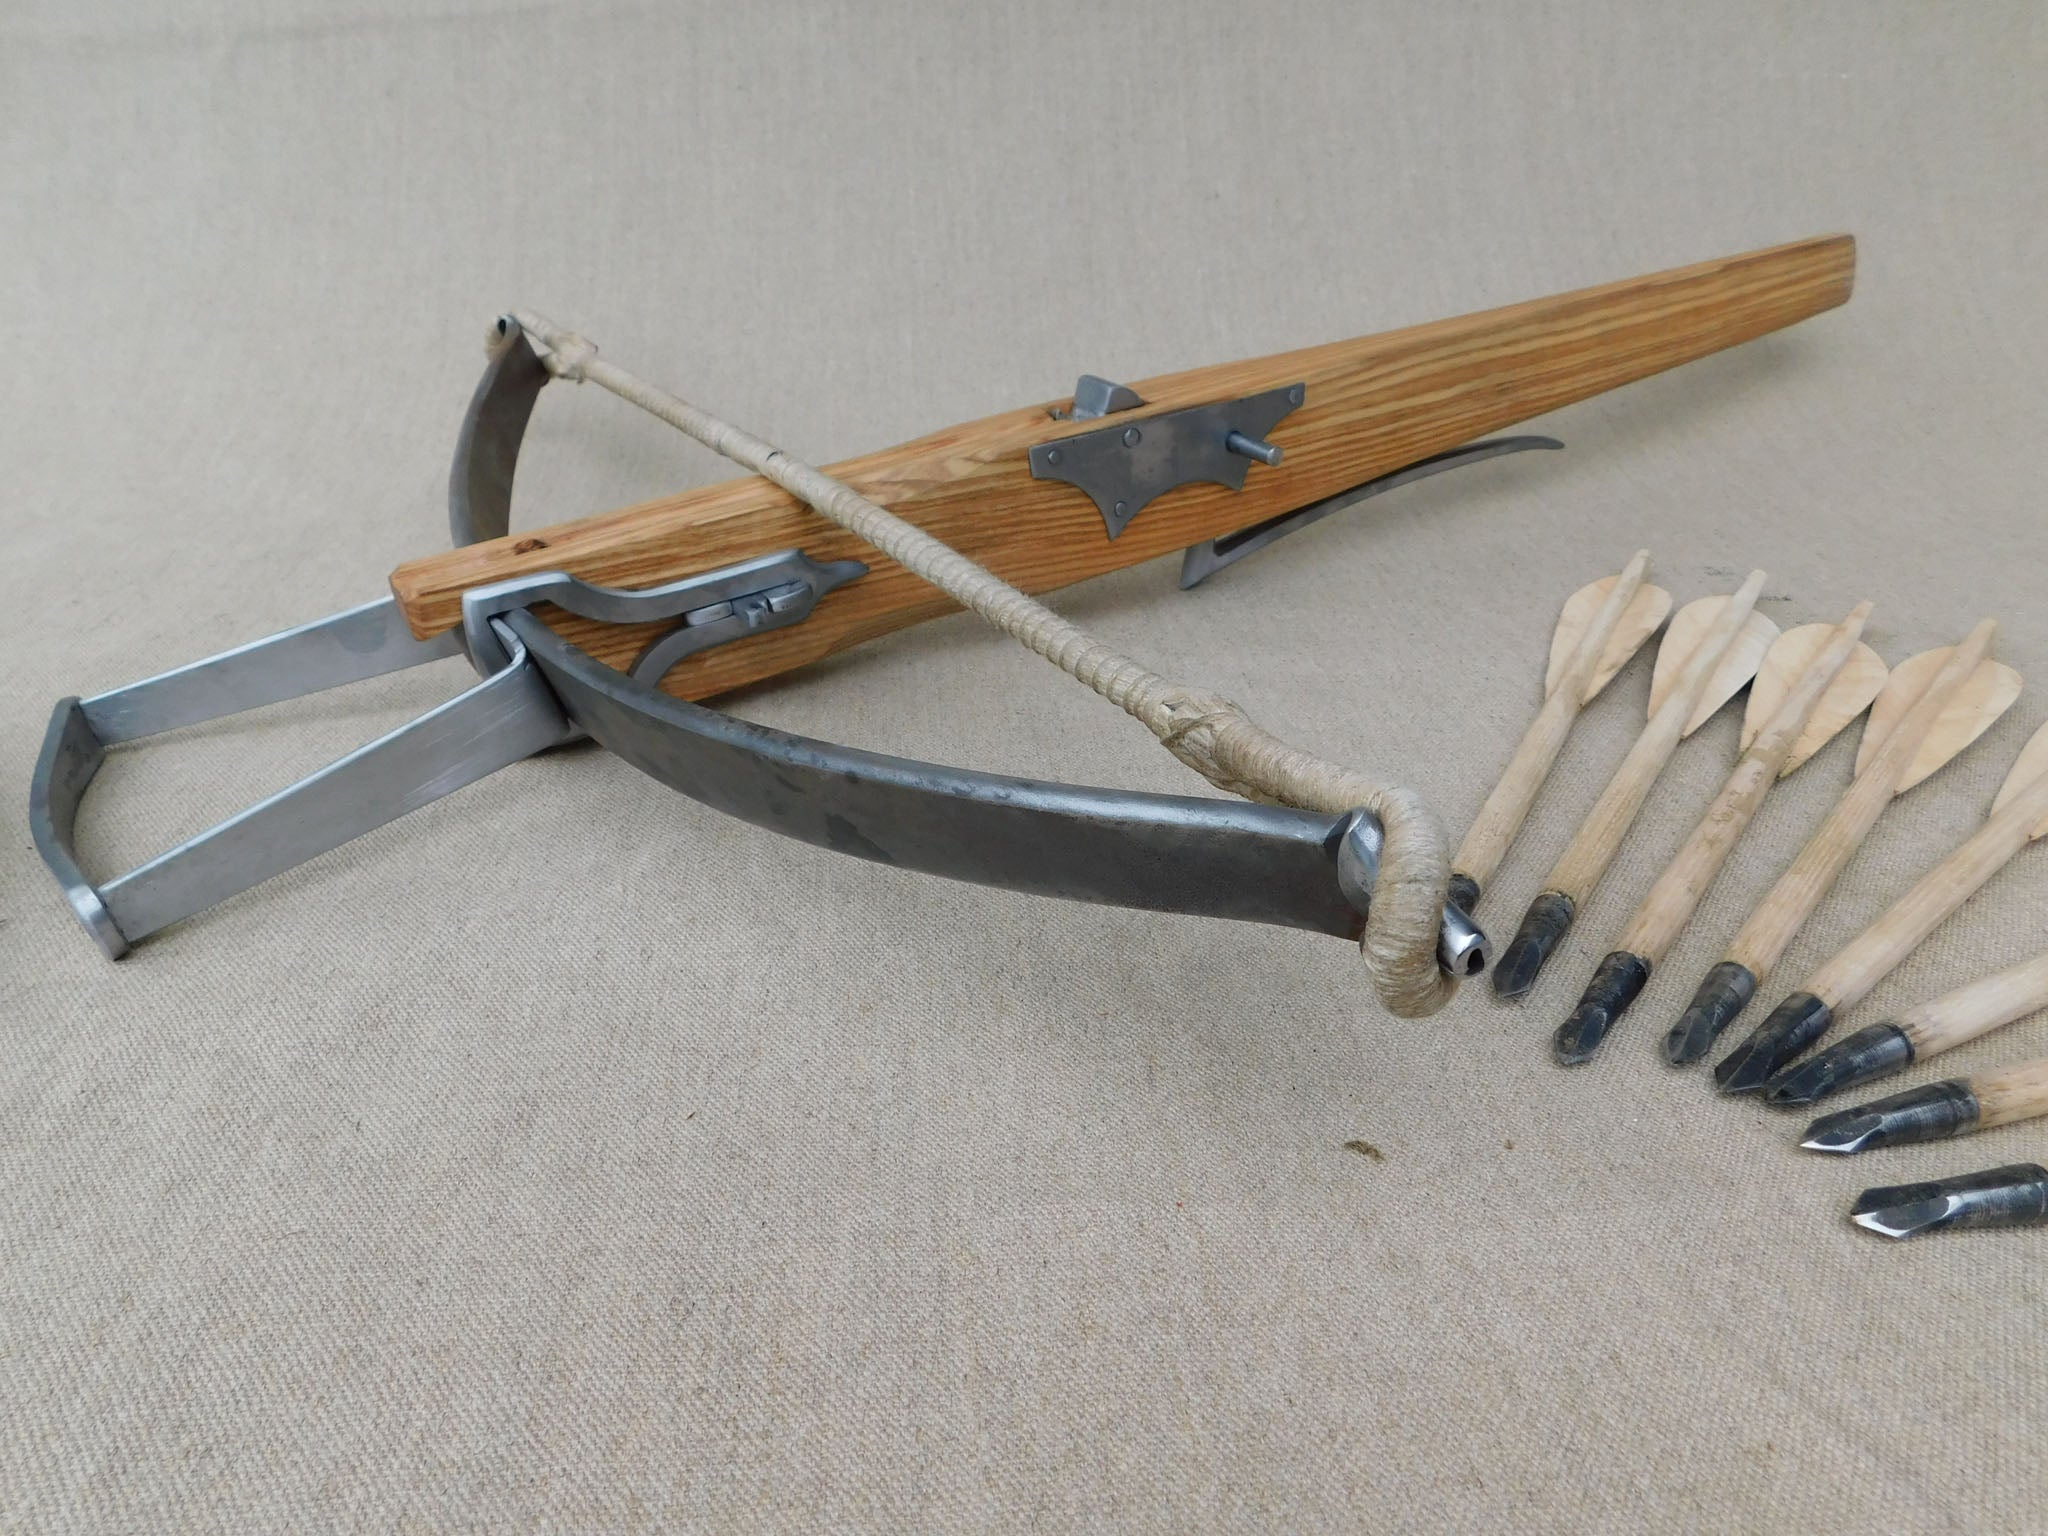 Medieval crossbows, museum quality replica - Tod's Workshop